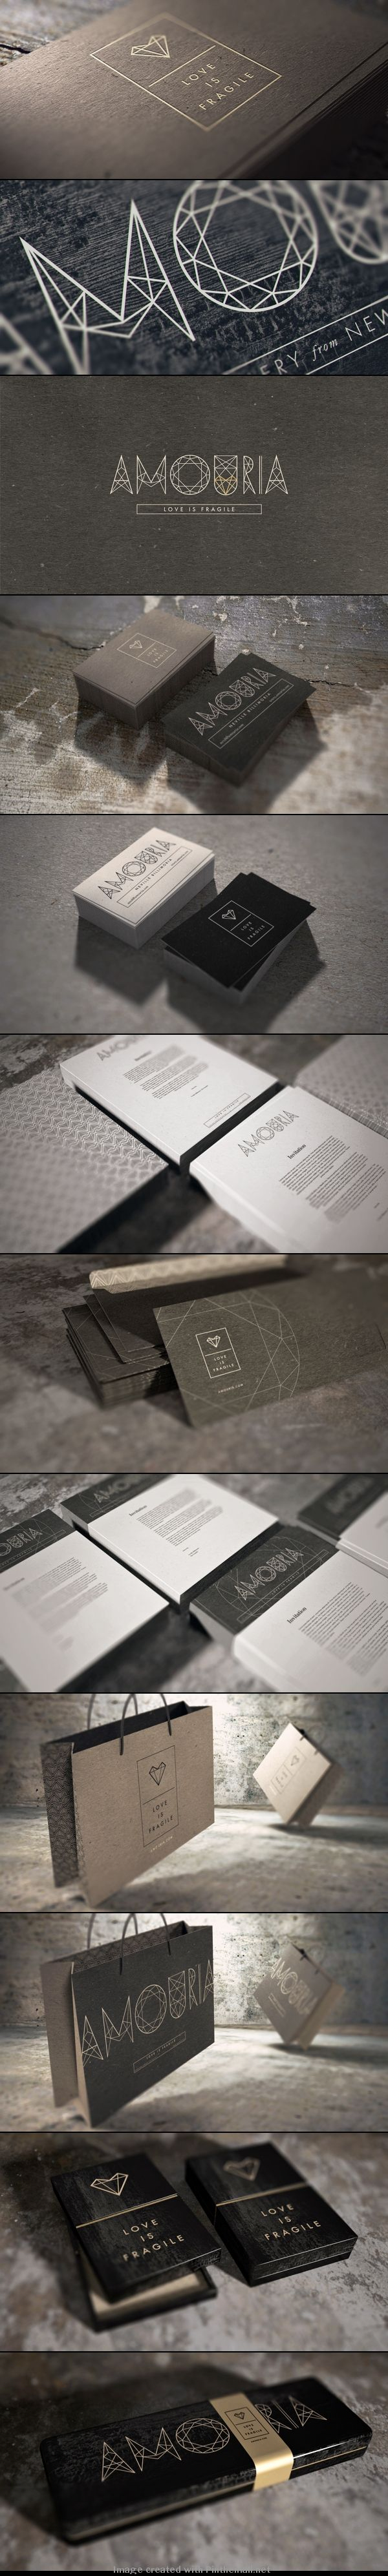 Amouria Jewelry #branding #stationary #packaging #design via Behance PD